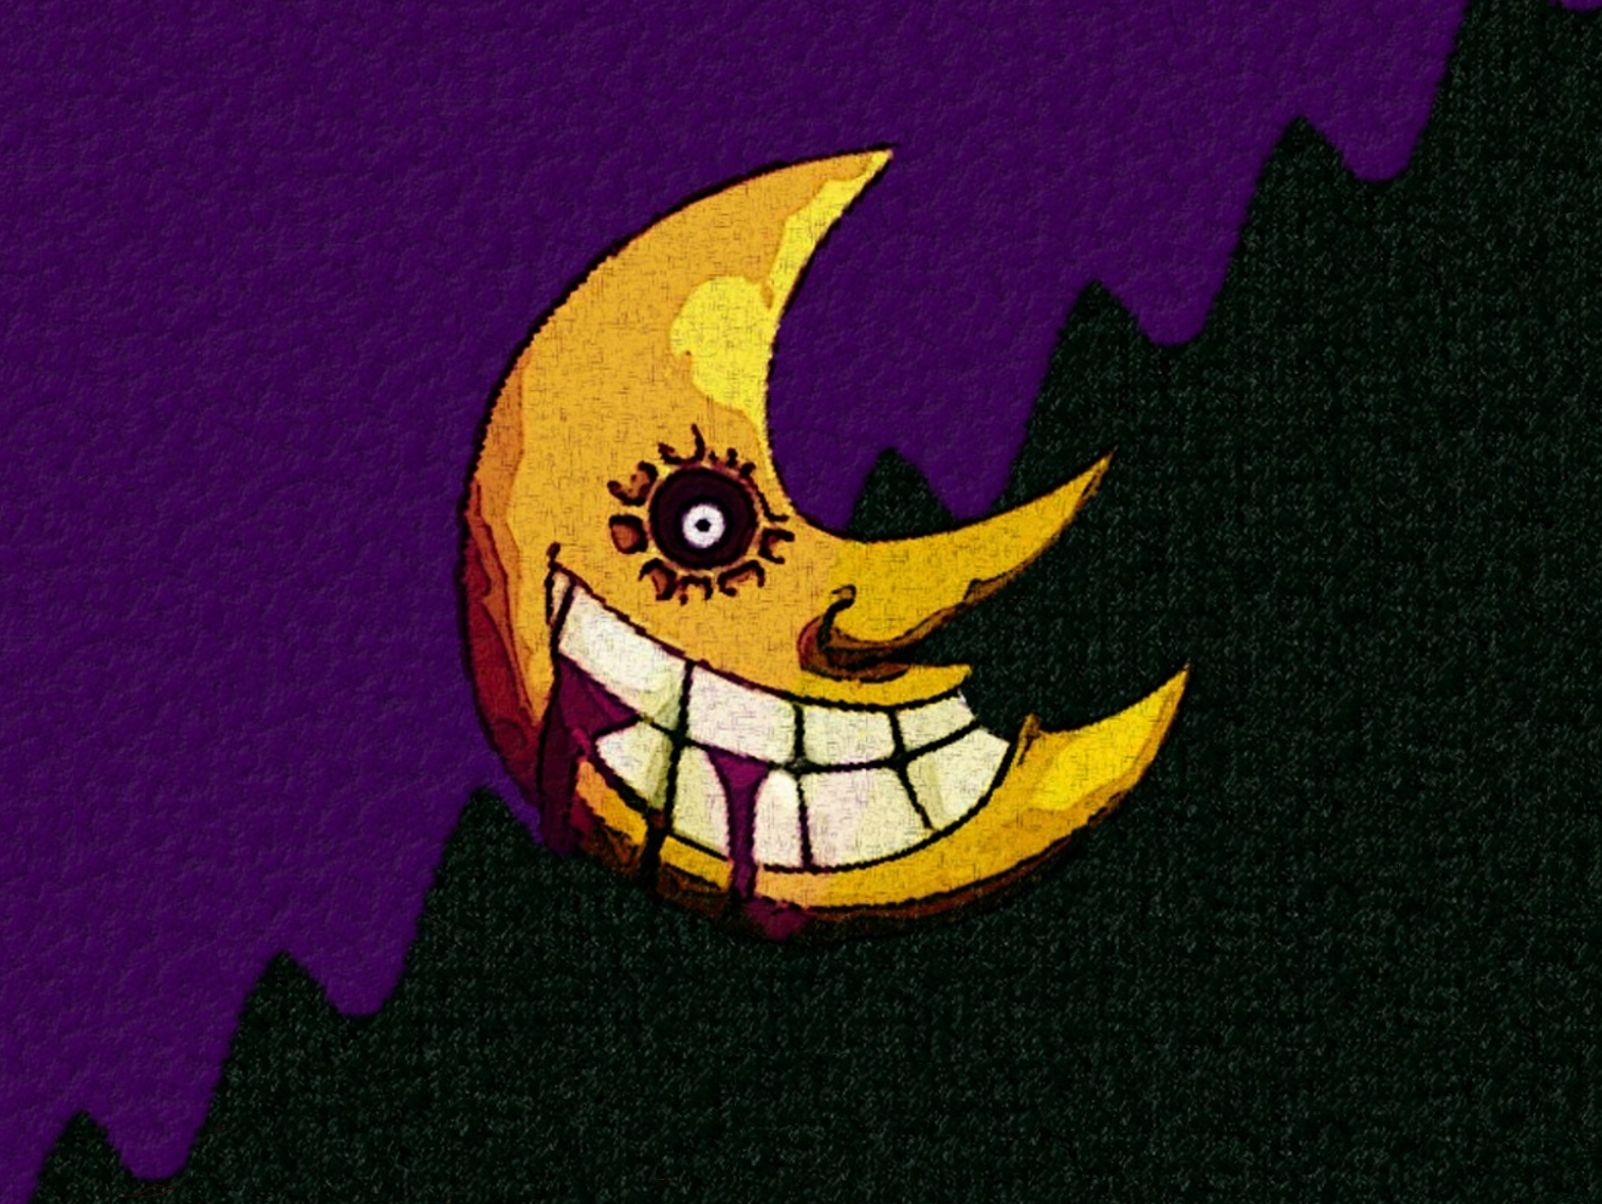 Soul Eater Moon Wallpapers Top Free Soul Eater Moon Backgrounds